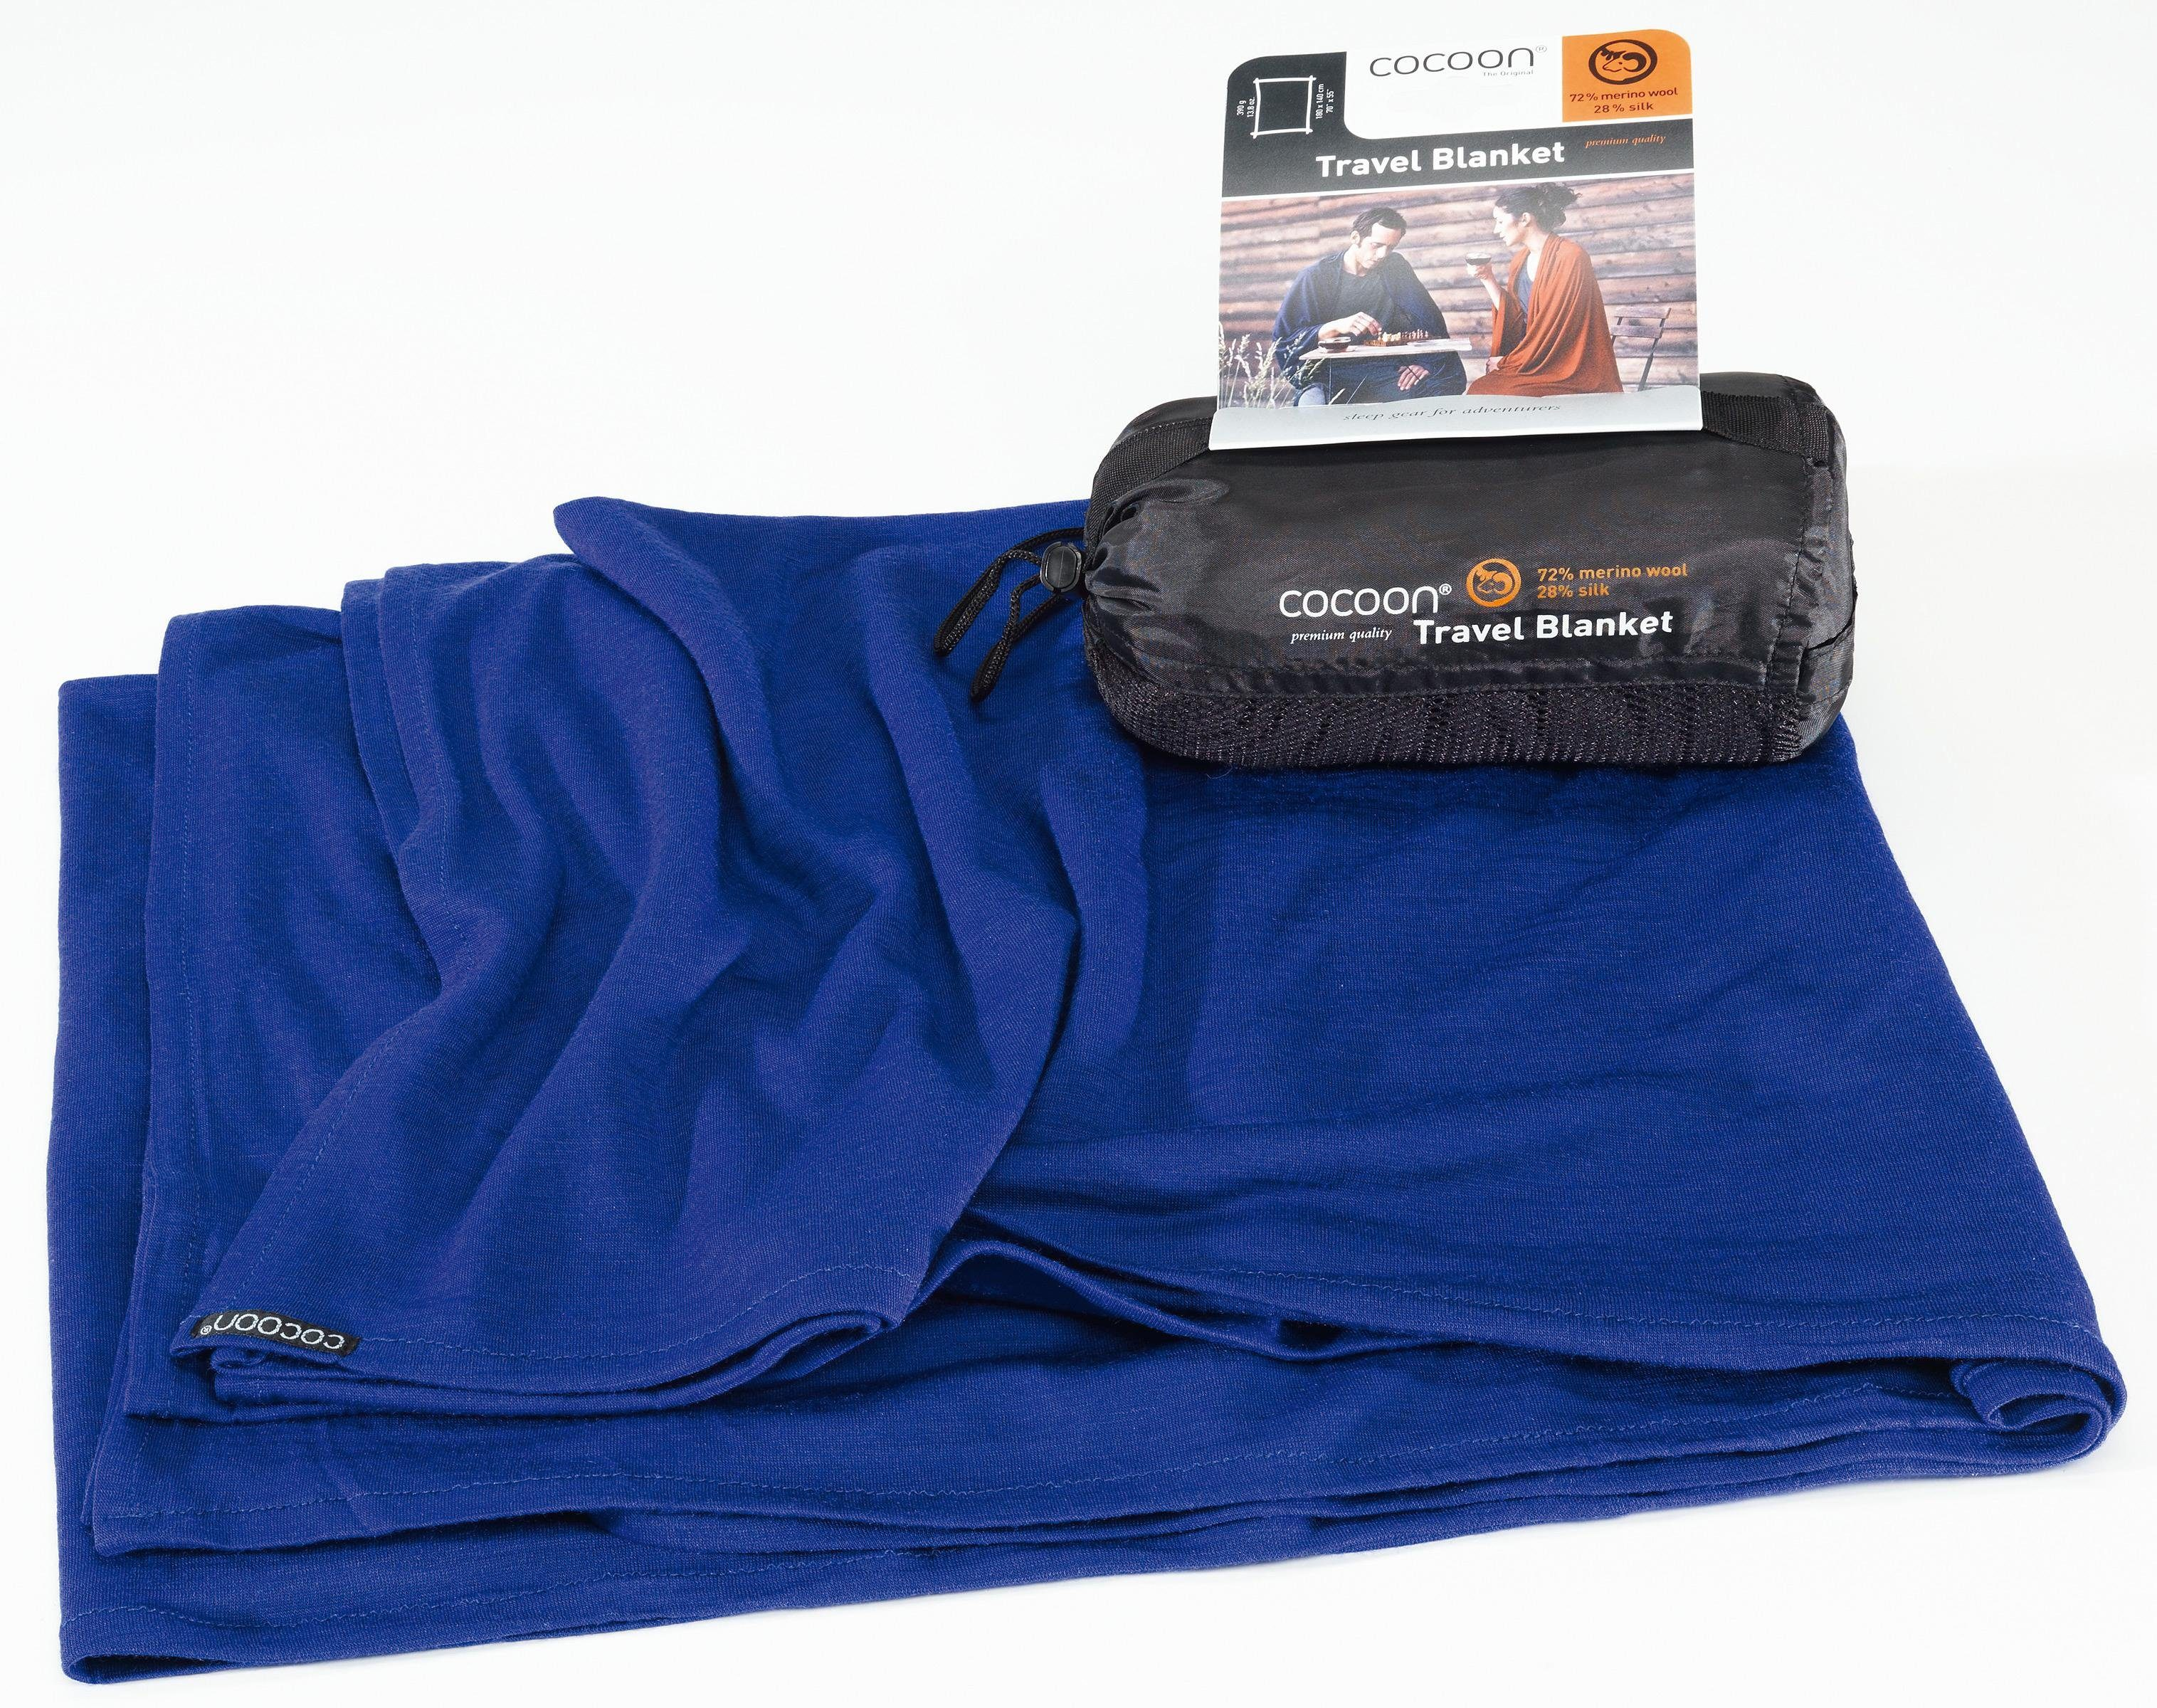 Cocoon Reisedecke »Travel Blanket Merino Wool/Silk«